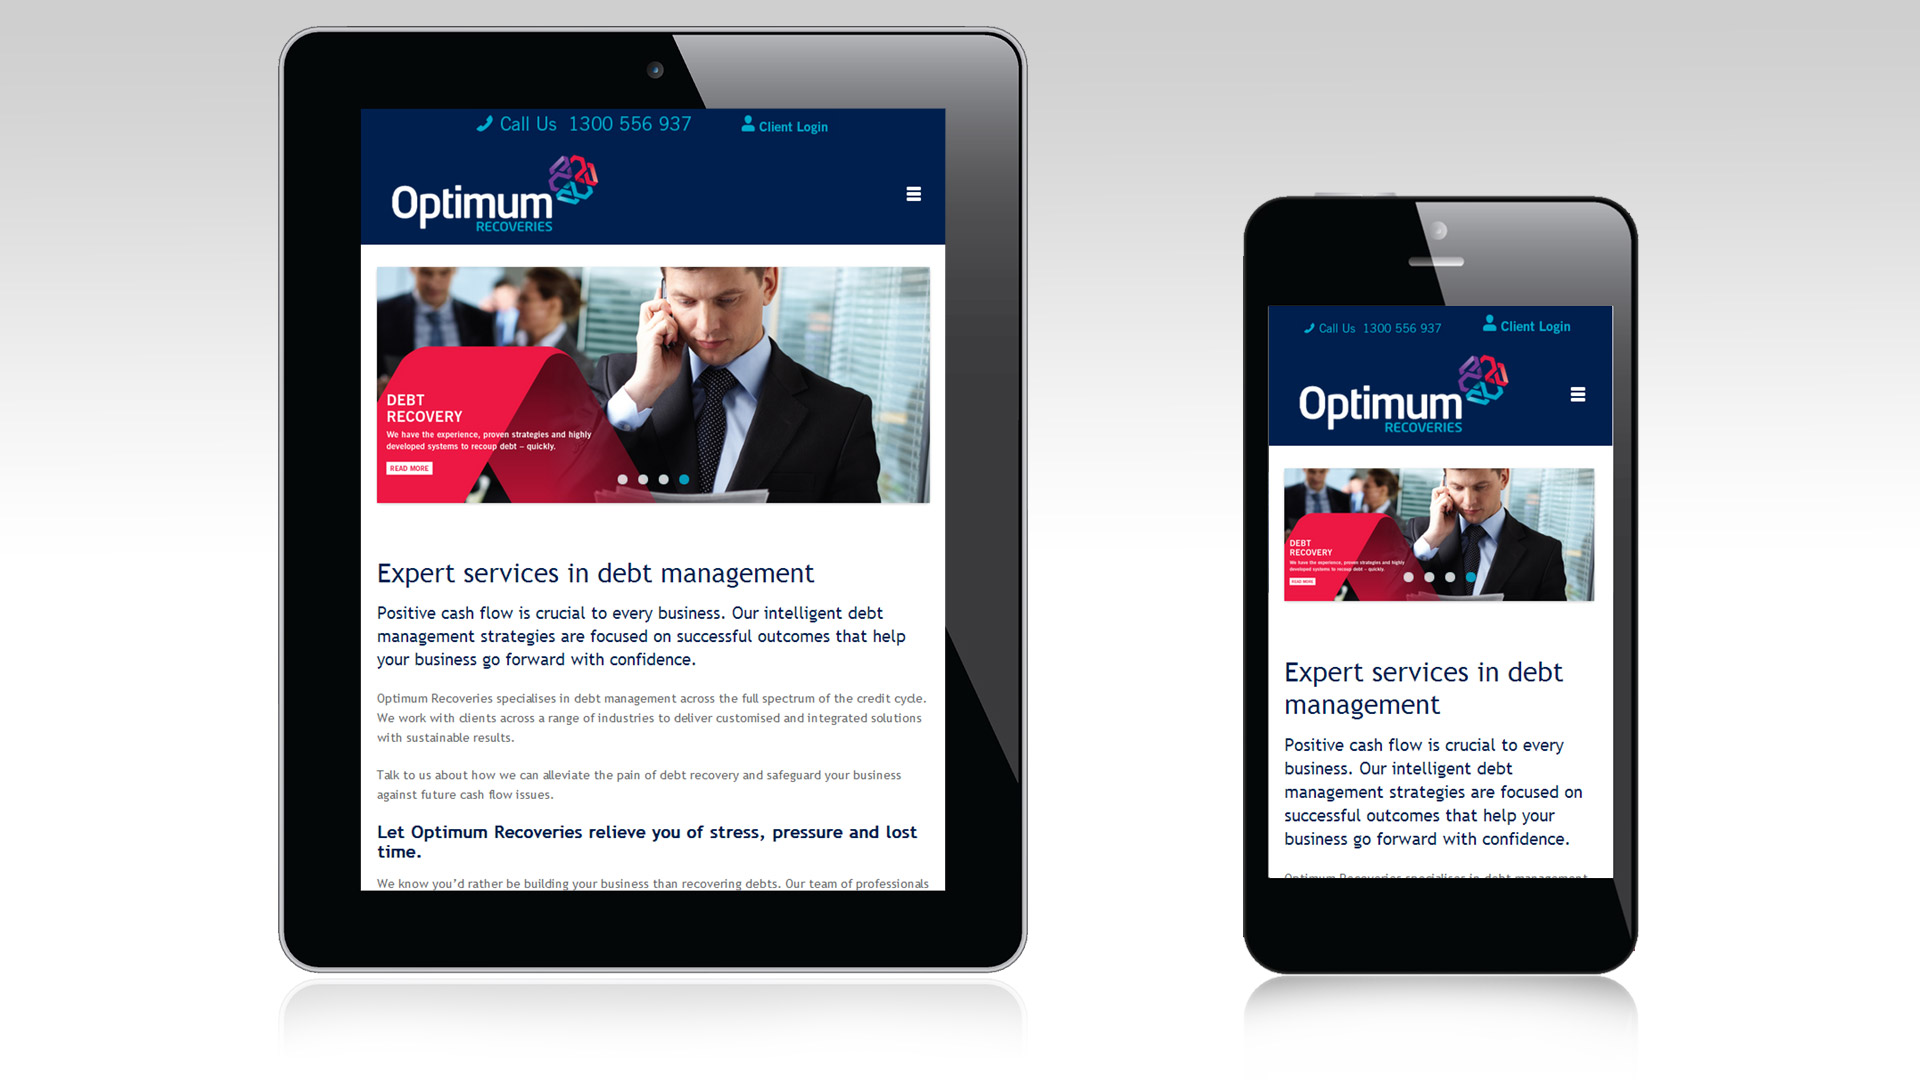 Optimum responsive tablet and mobile views